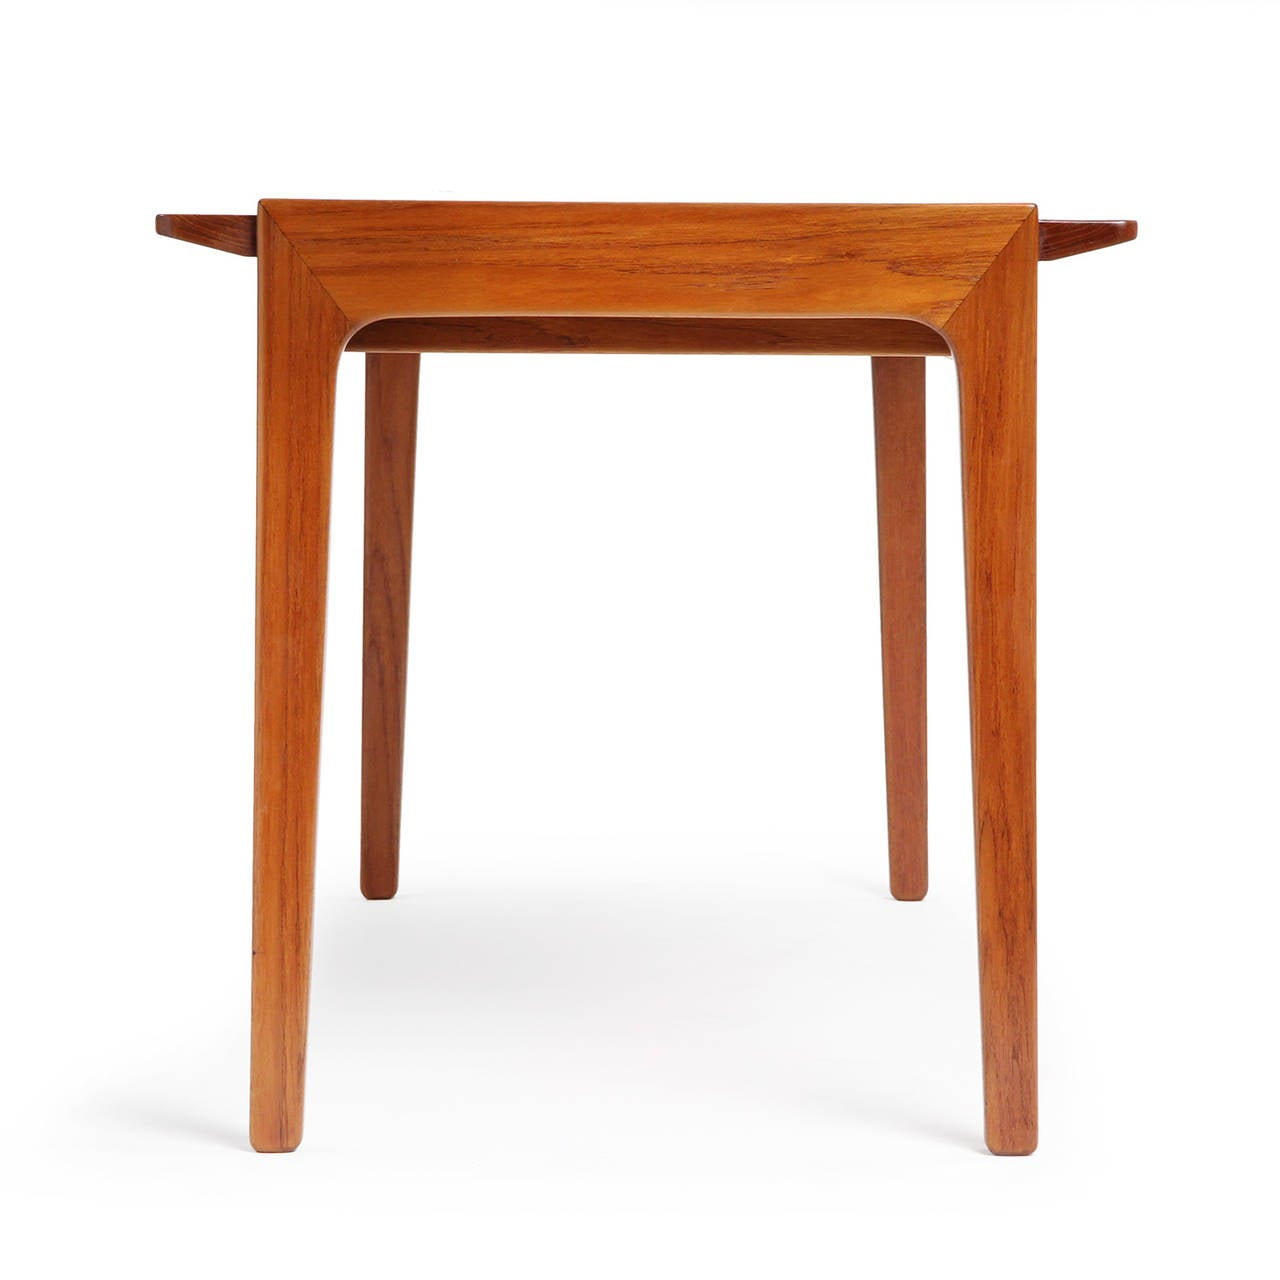 Teak Writing Desk by Tove & Edvard Kindt-Larsen In Good Condition For Sale In New York, NY